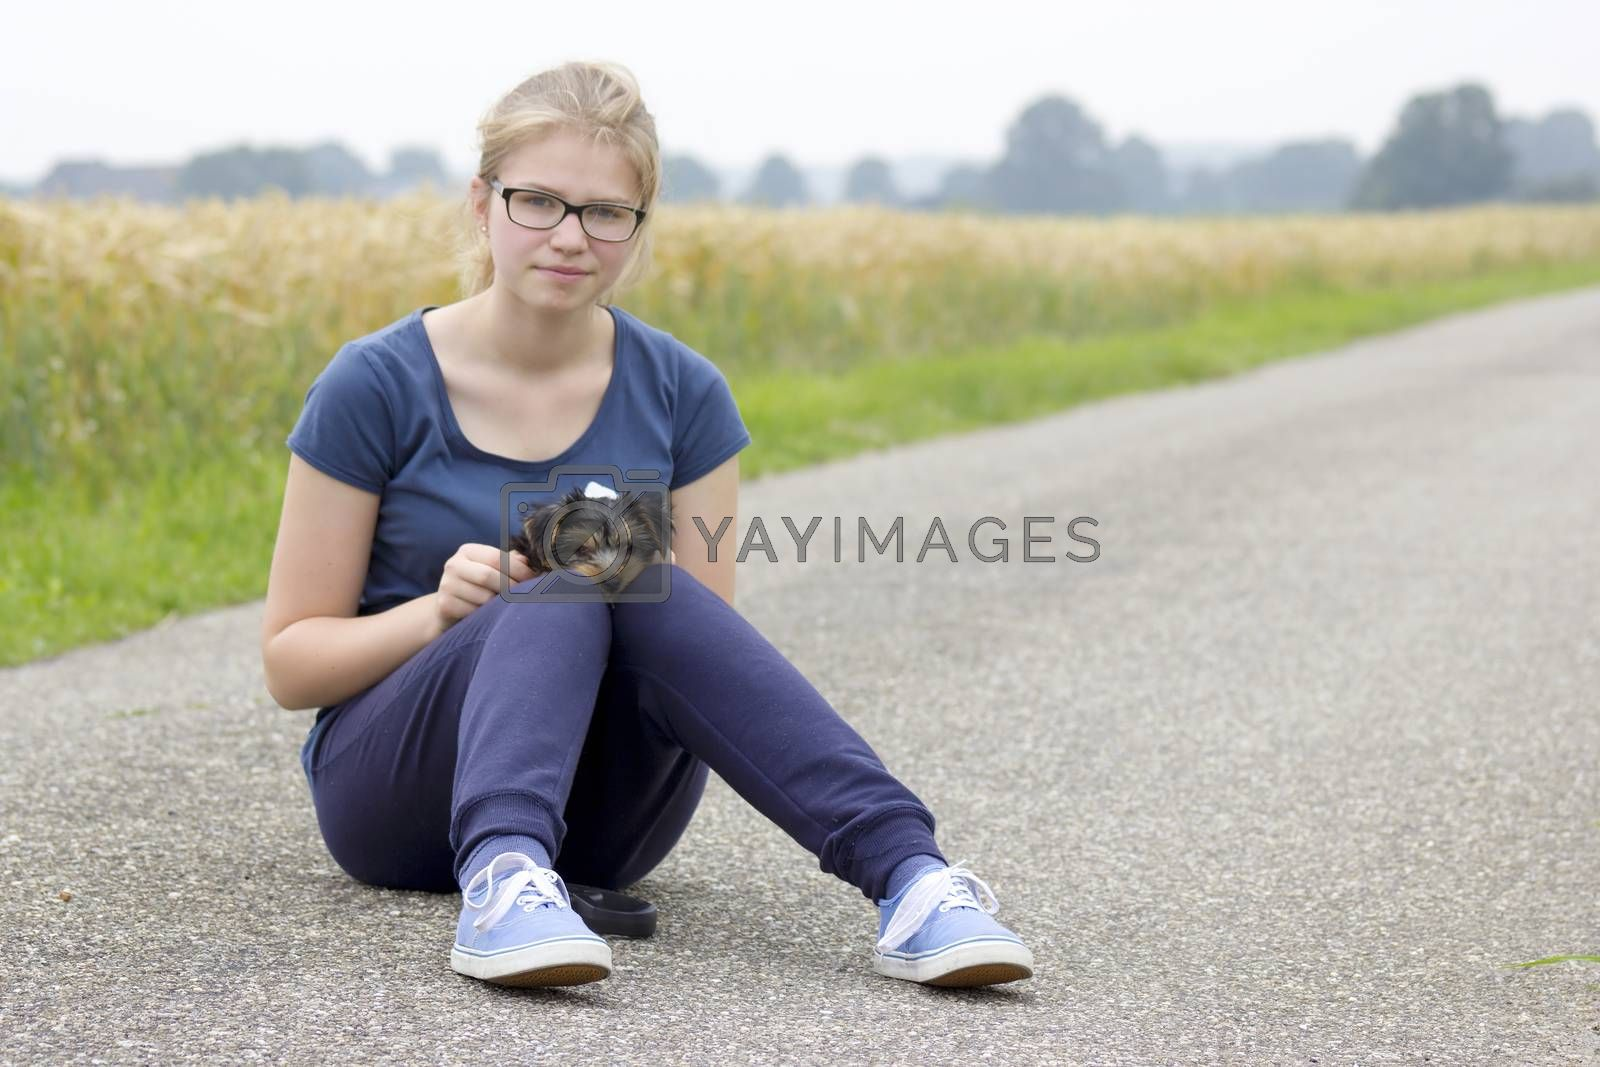 Royalty free image of young girl and her dog by miradrozdowski